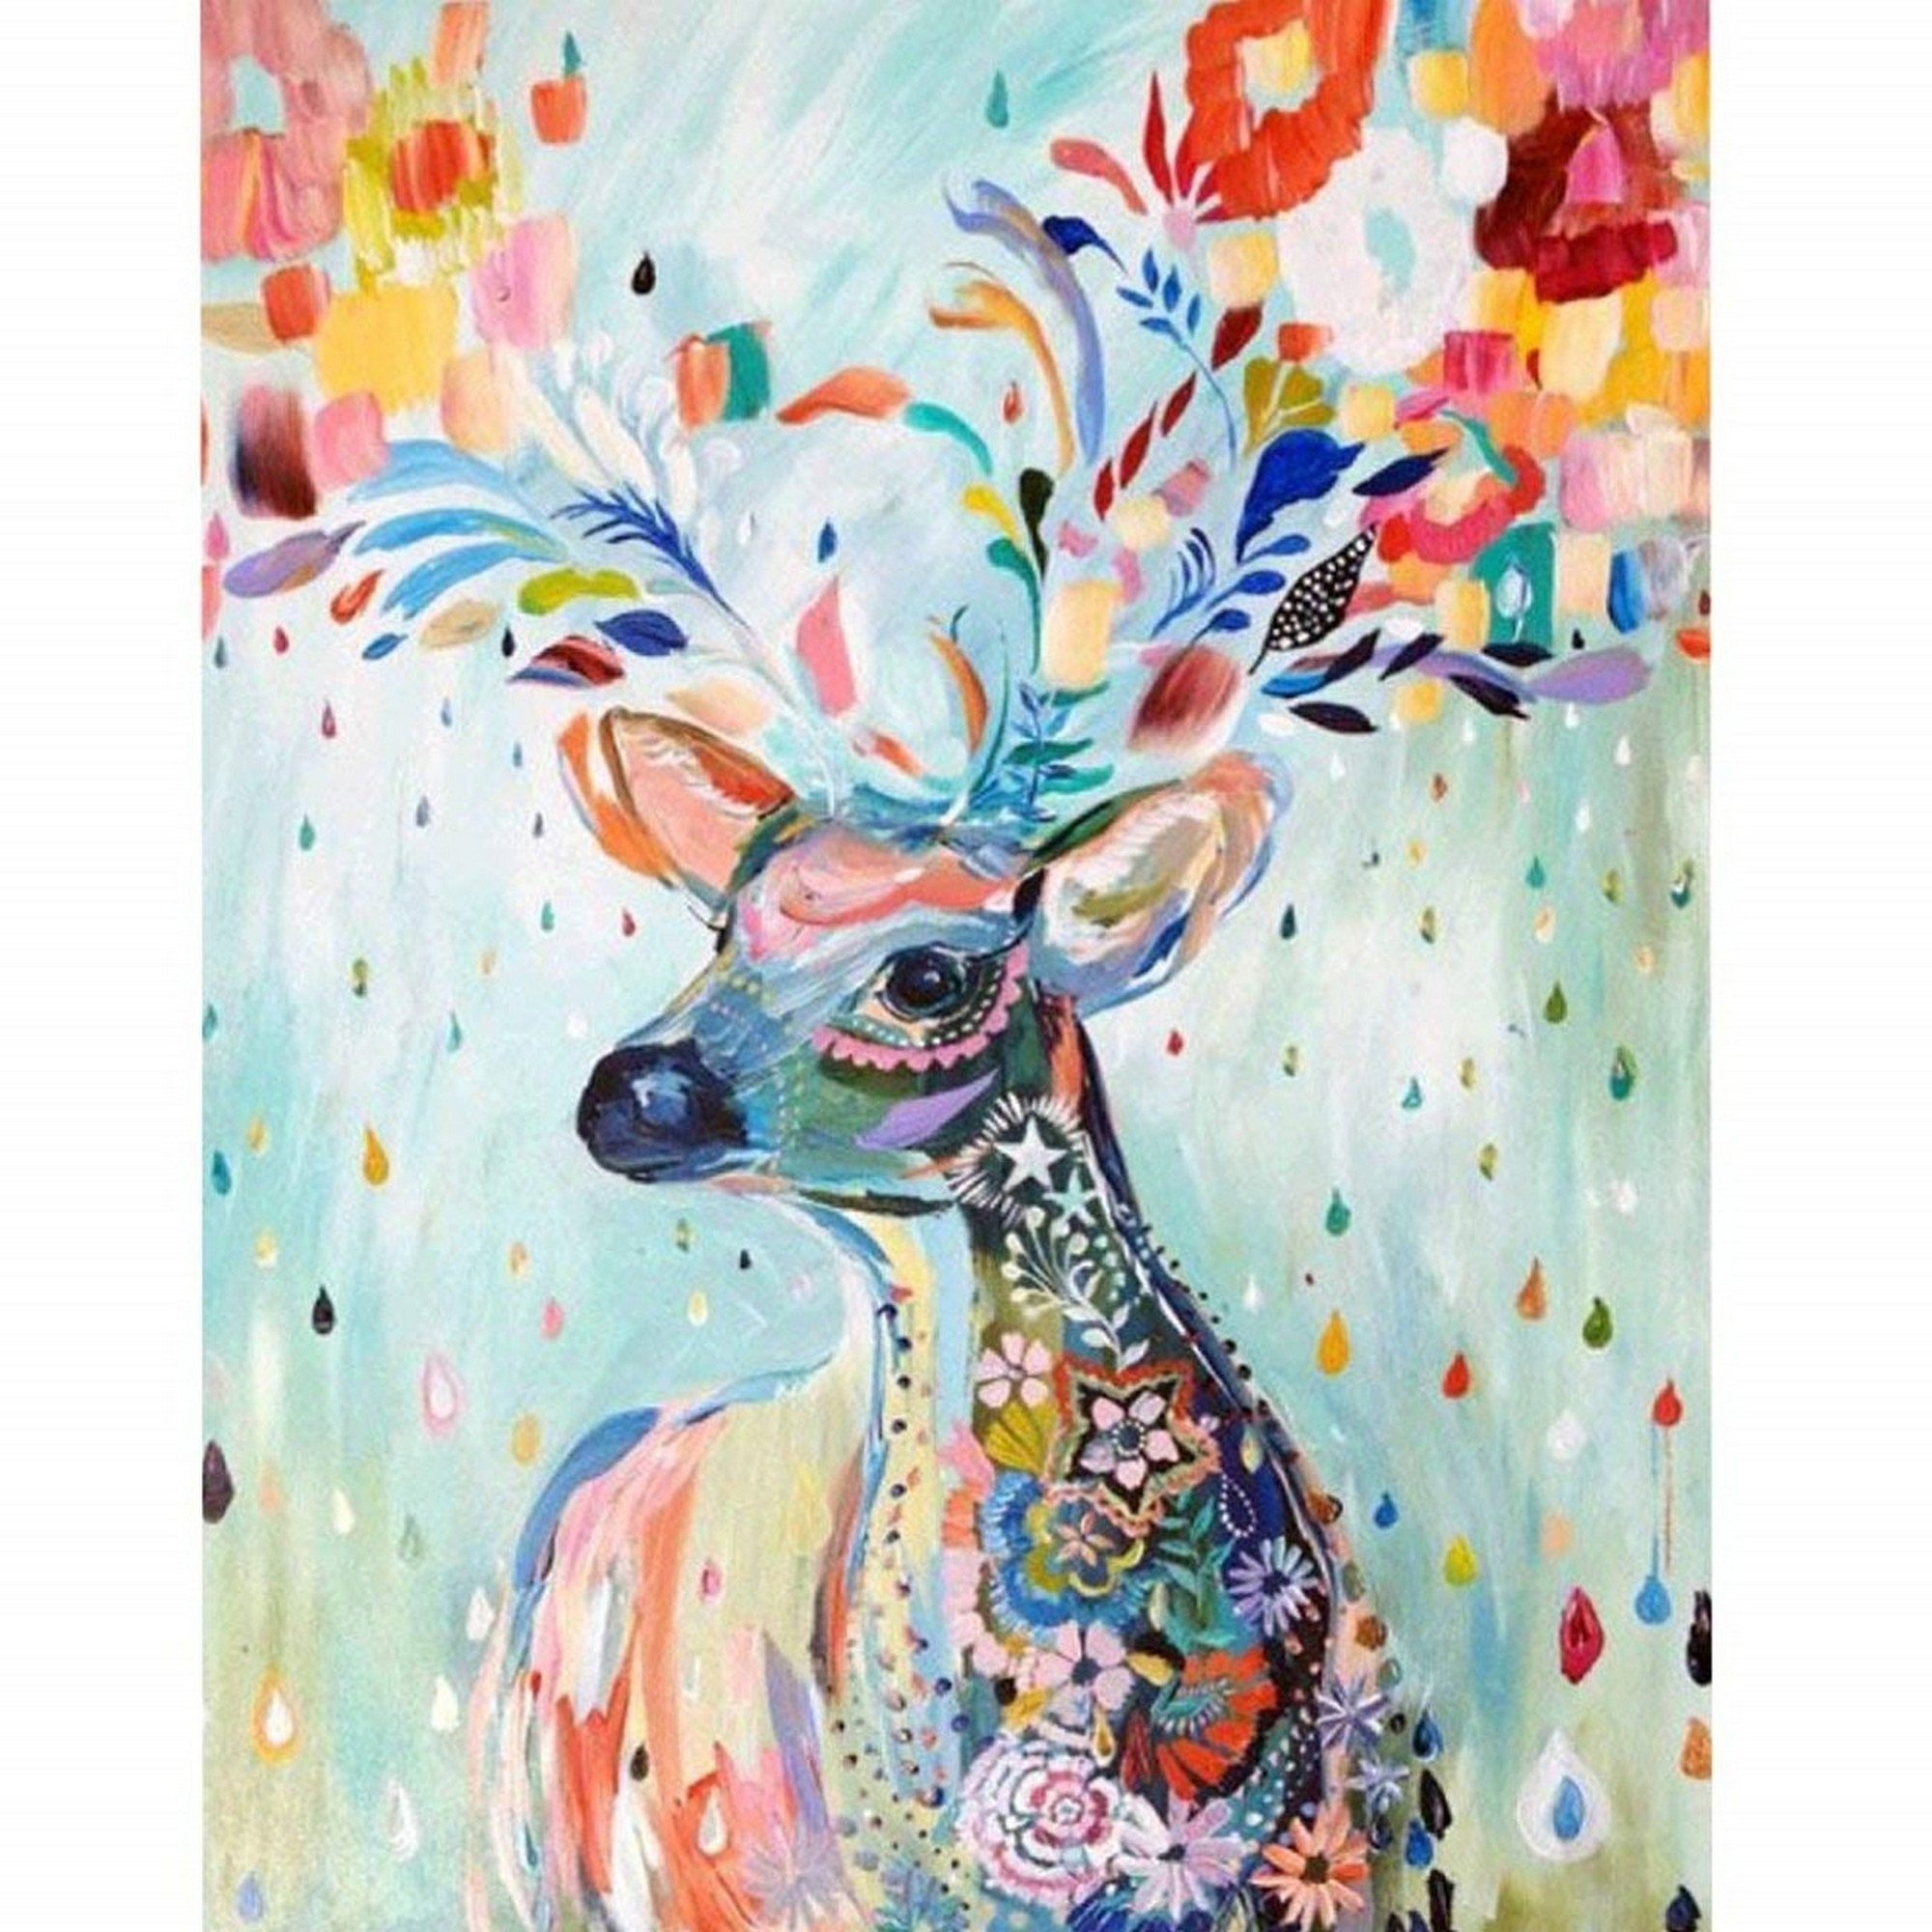 Full Diamond Animal Trees House Embroidery Rhinestone Cross Stitch Arts Craft Supply for Home Wall Decor DIY 5D Diamond Painting Kit